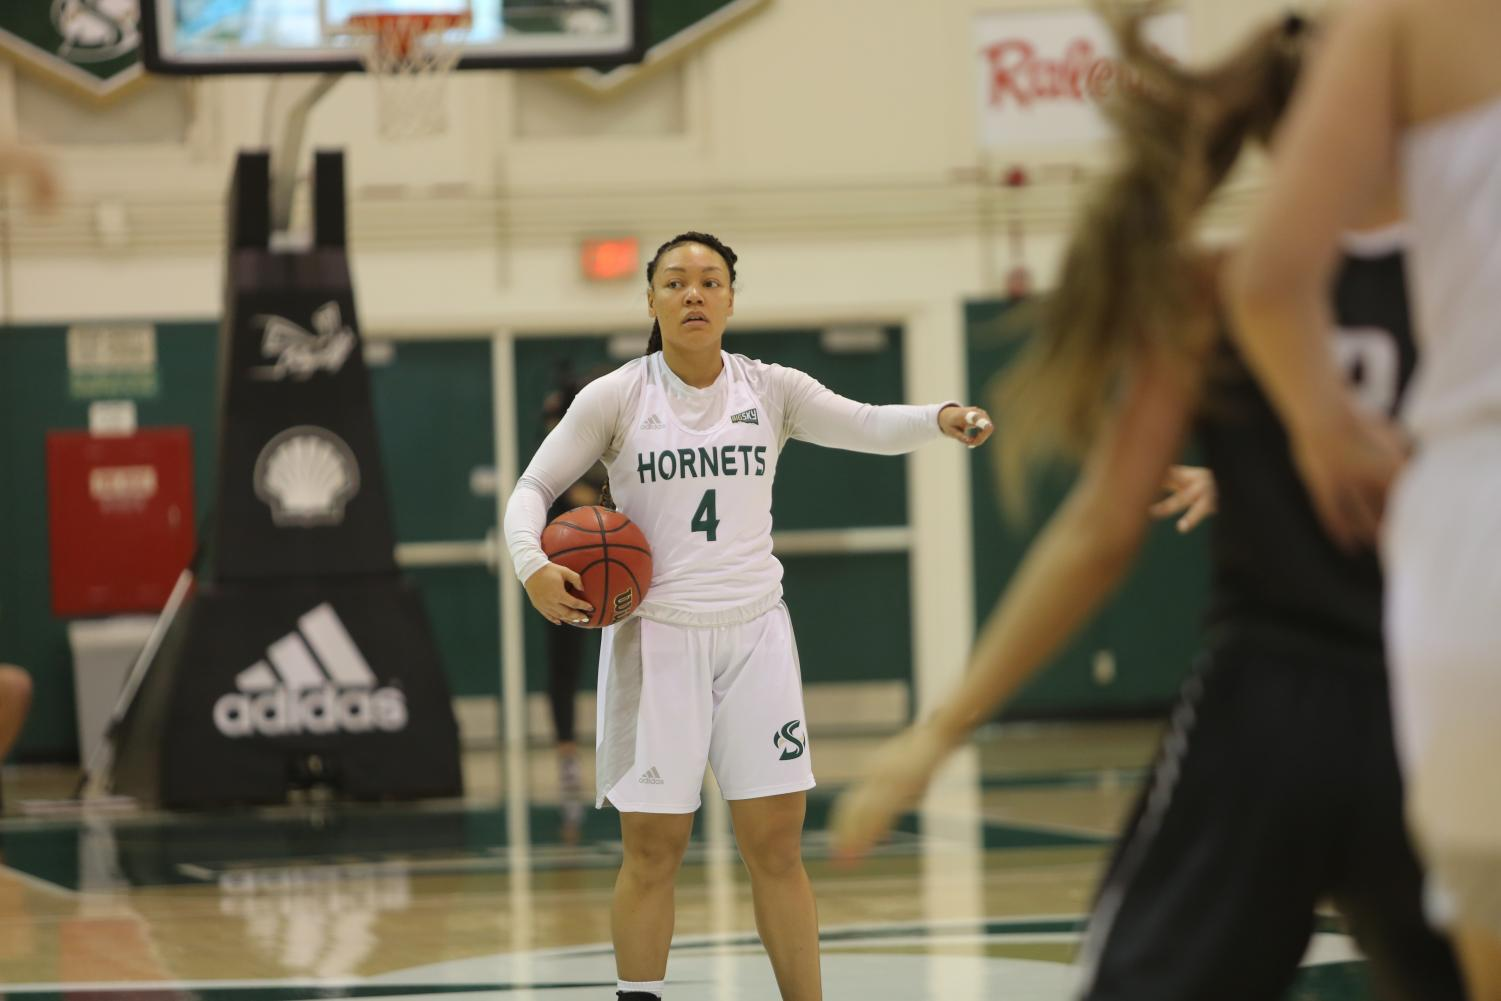 Sac State senior guard Camariah King calls out a play against Montana on Monday, Dec. 30, 2019 at the Nest. The Hornets lost on the road to Idaho State 80-62 on Saturday, Jan. 4, 2020.